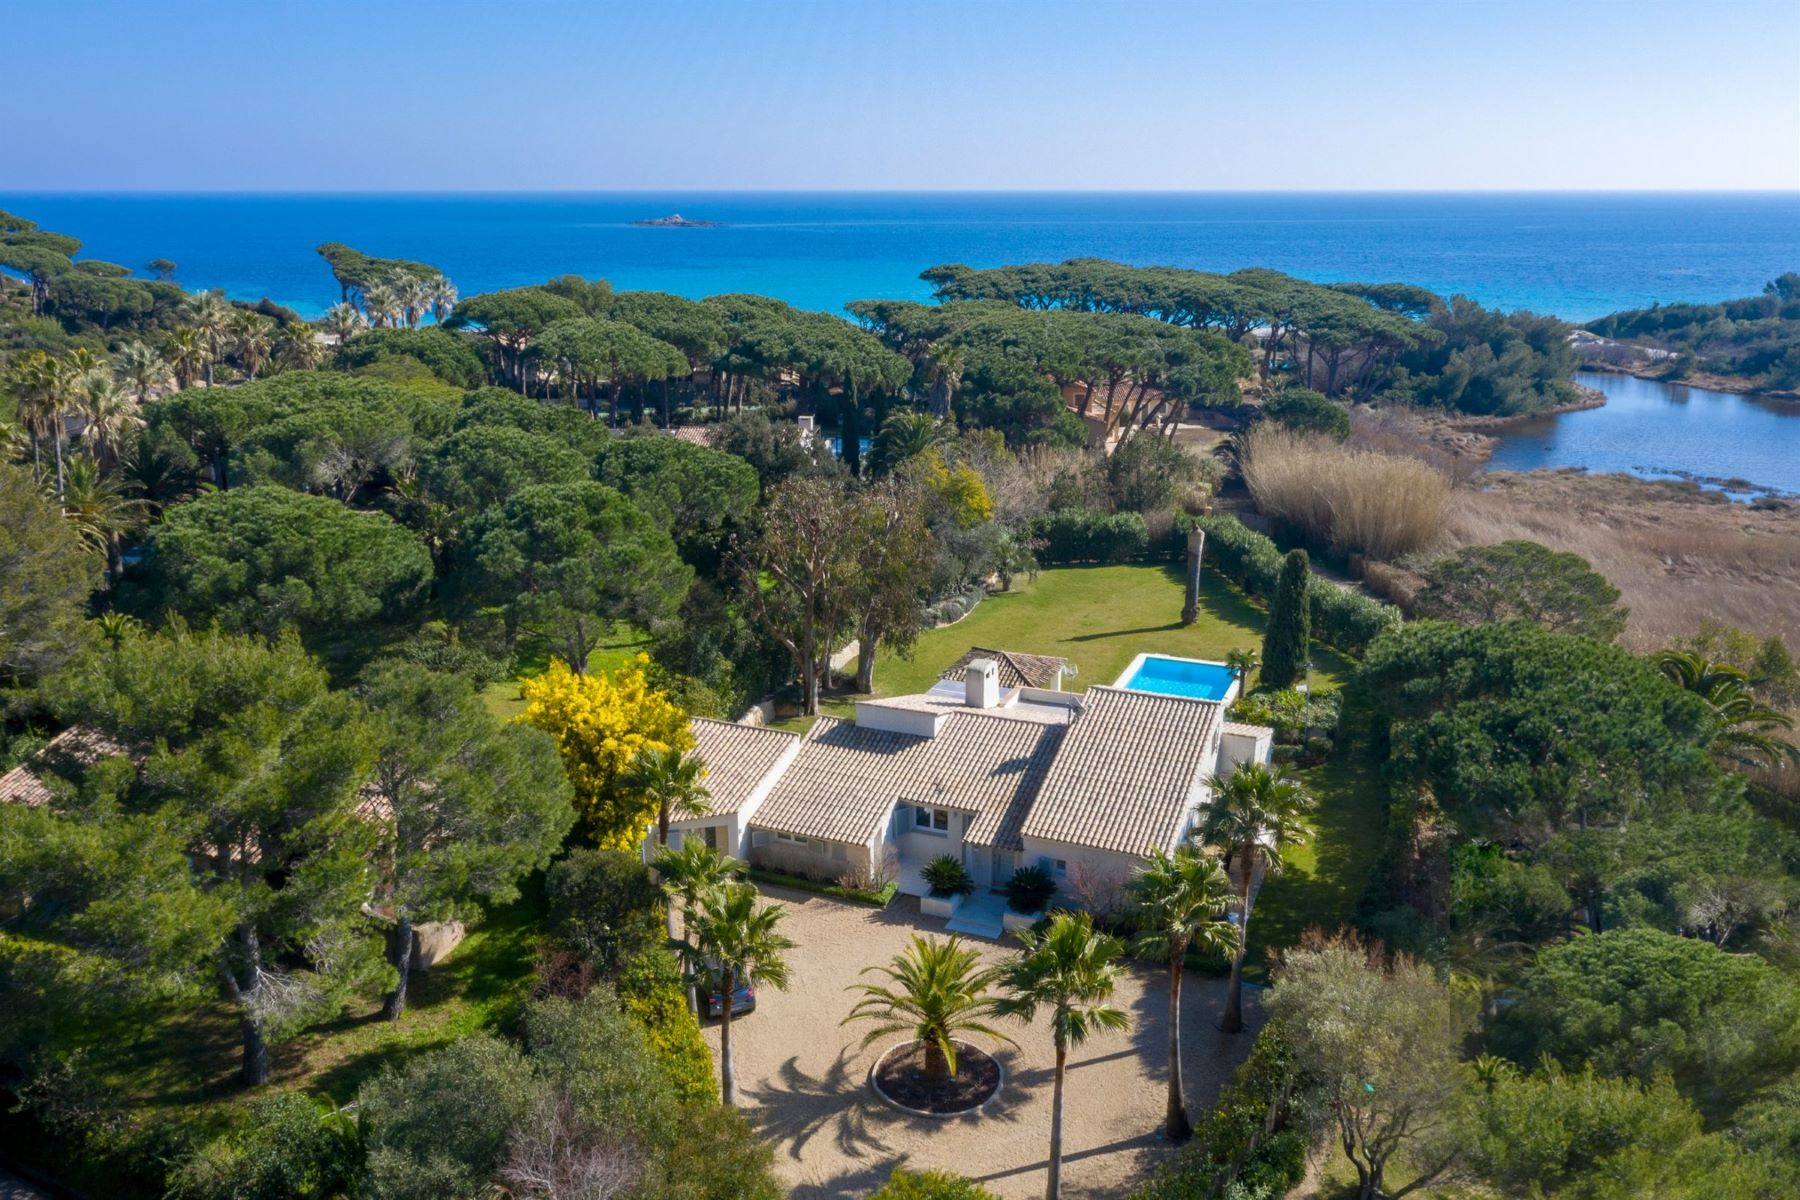 Single Family Home for Sale at For sale, beautiful remodeled home in a secured domain next to the beach Saint Tropez, Provence-Alpes-Cote D'Azur 83990 France